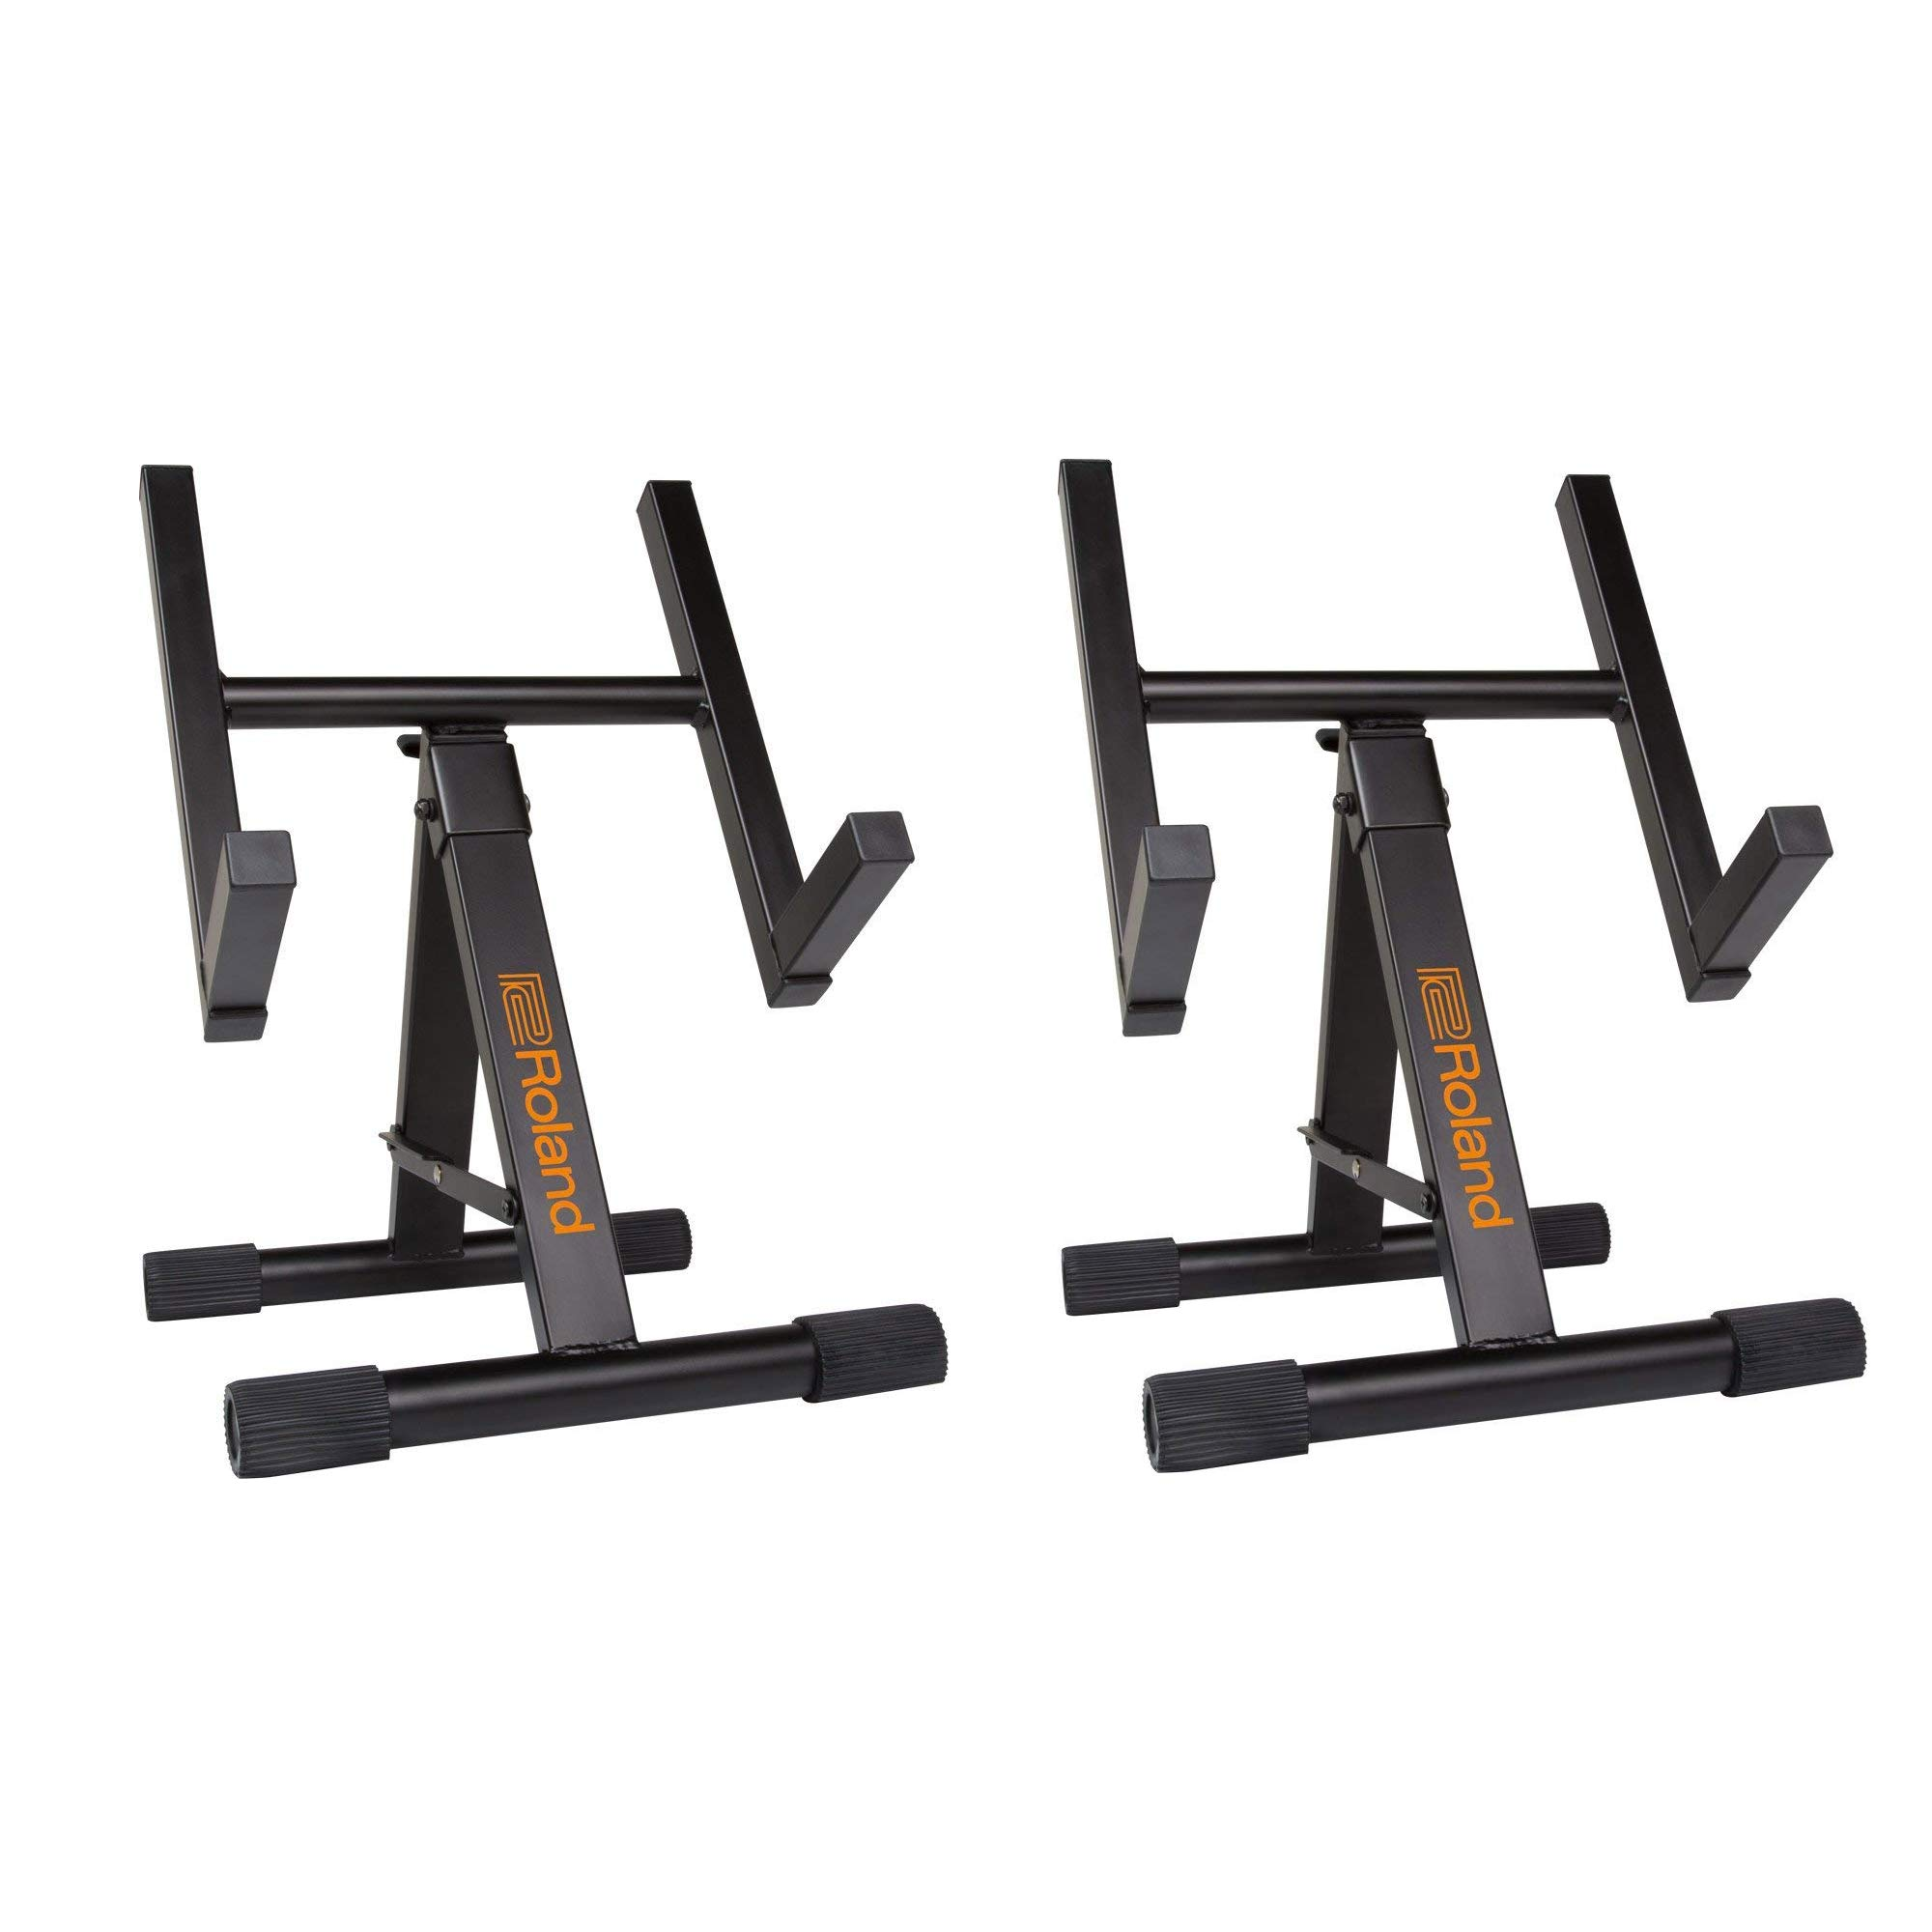 Roland RAS-S01 Amp Stand 2 Pack Bundle